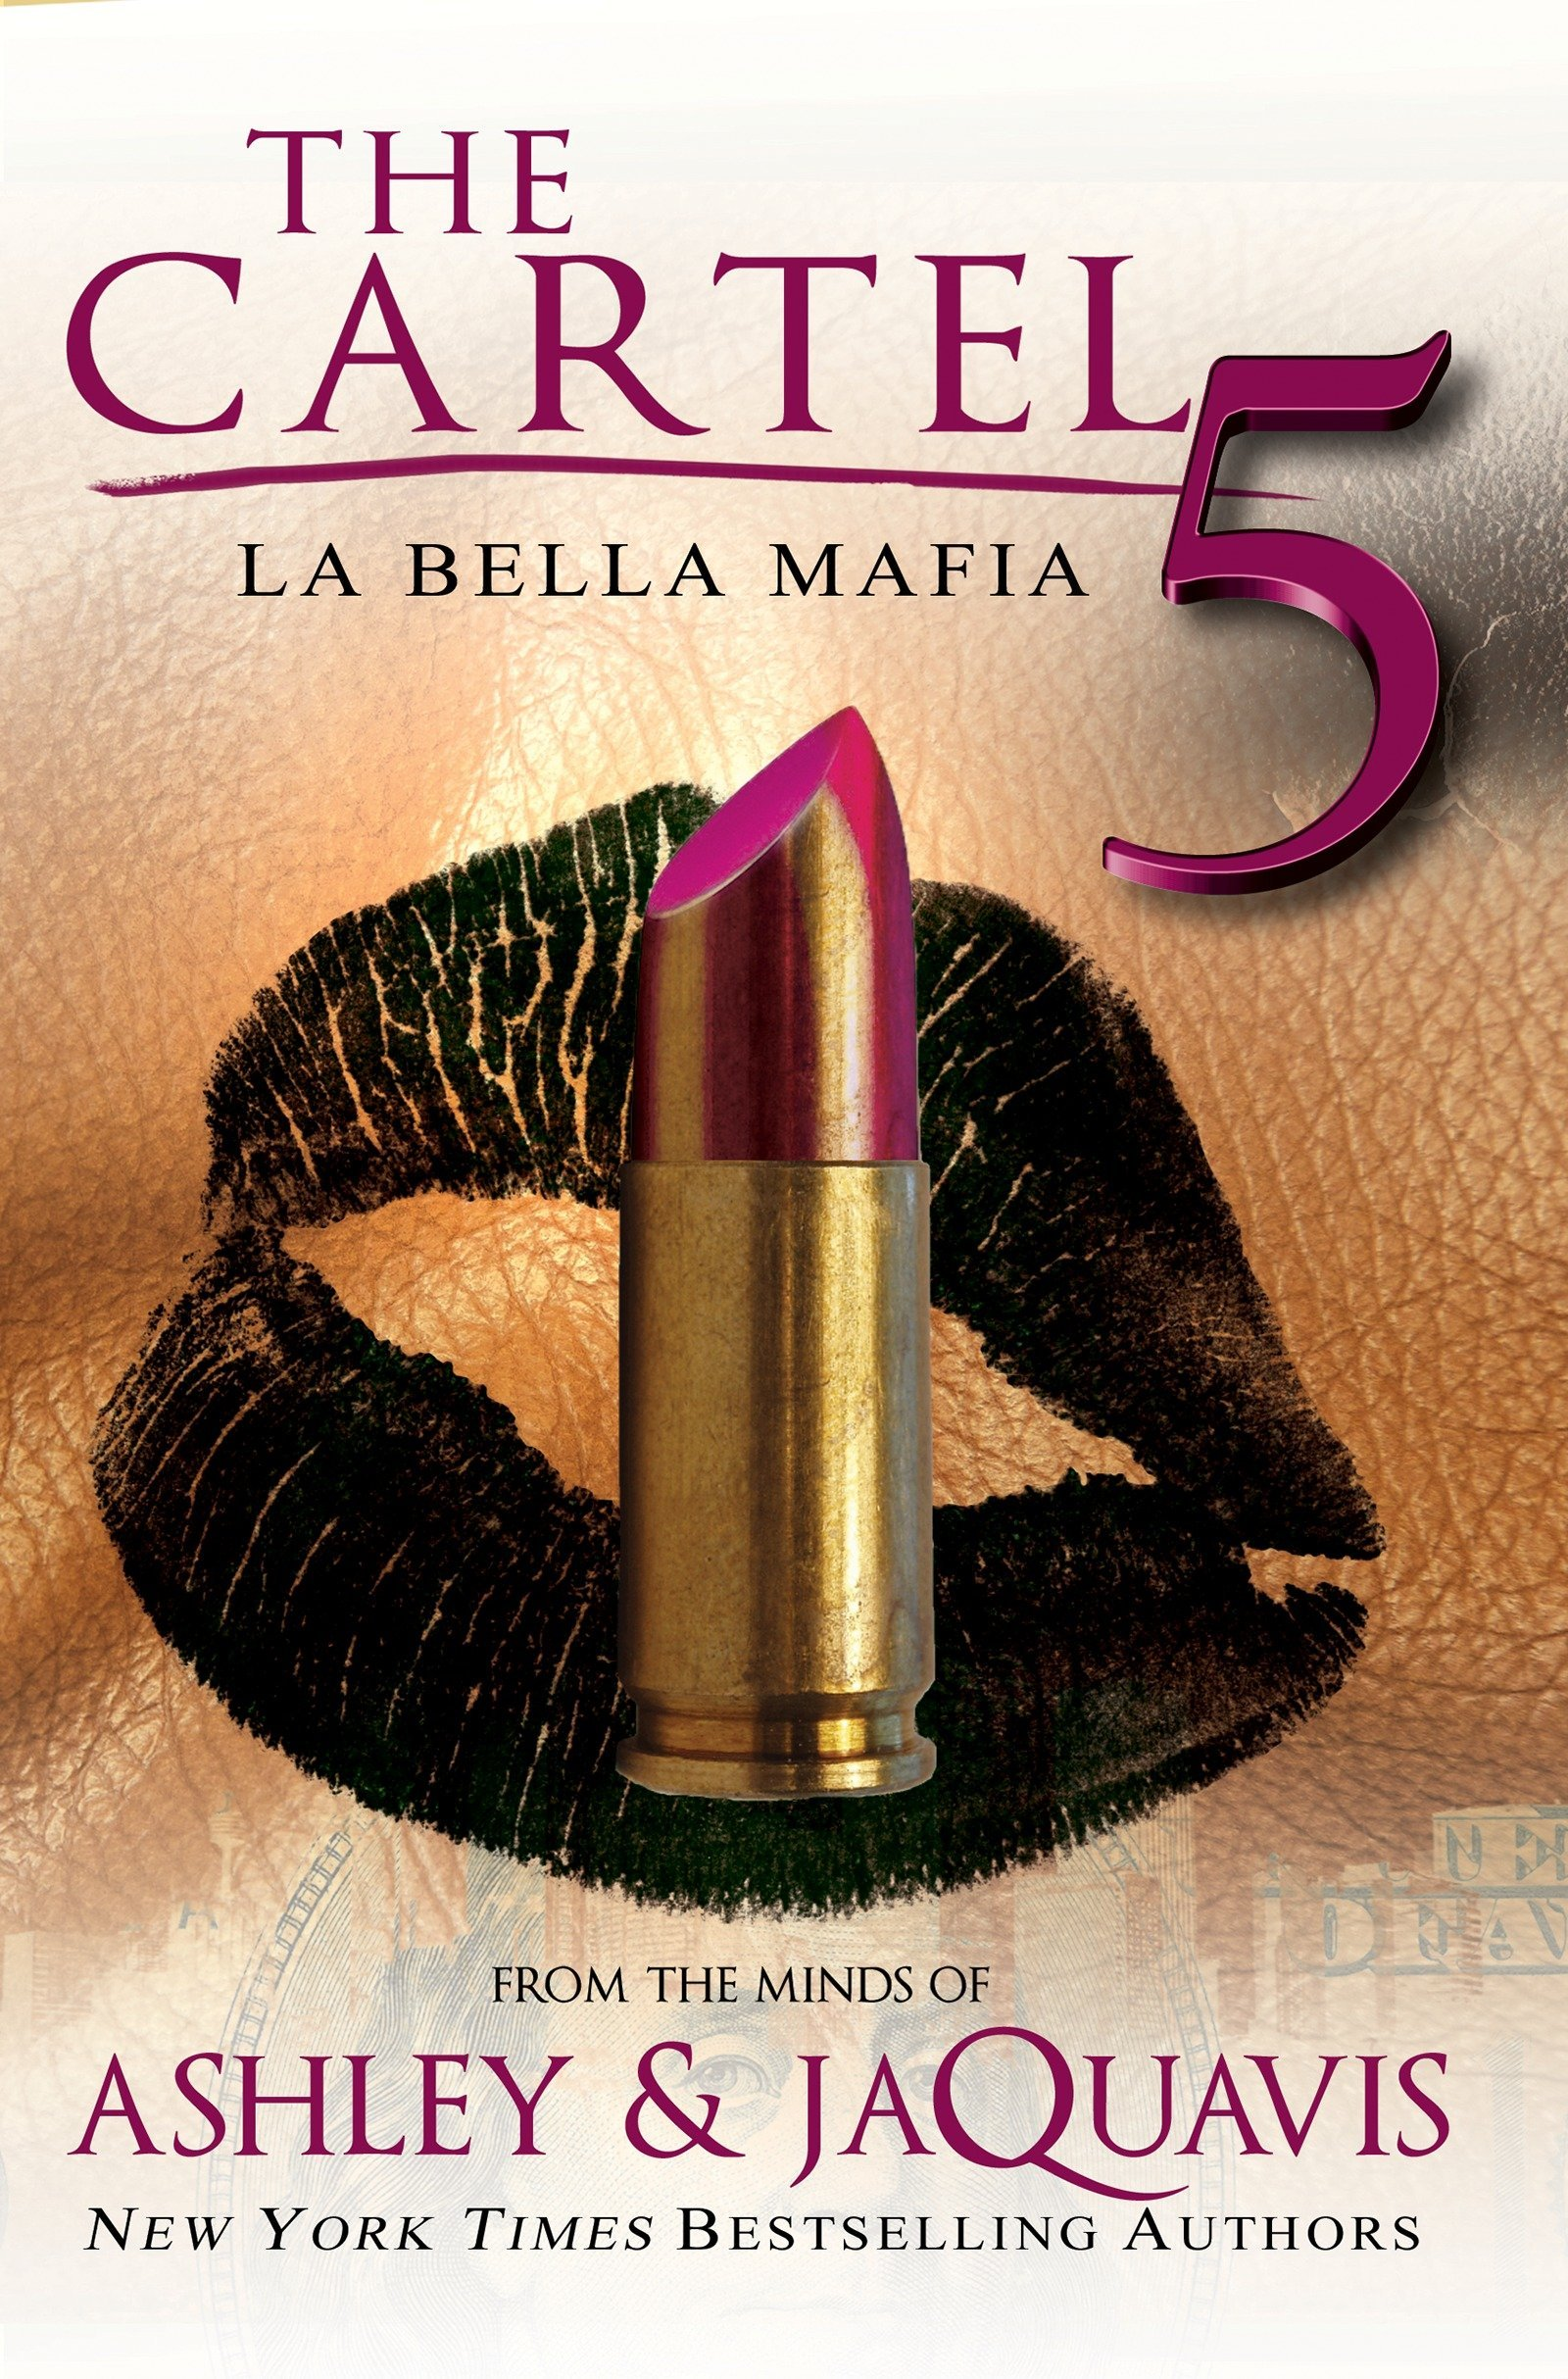 Amazon.com: The Cartel 5: La Bella Mafia (9781622867363 ...